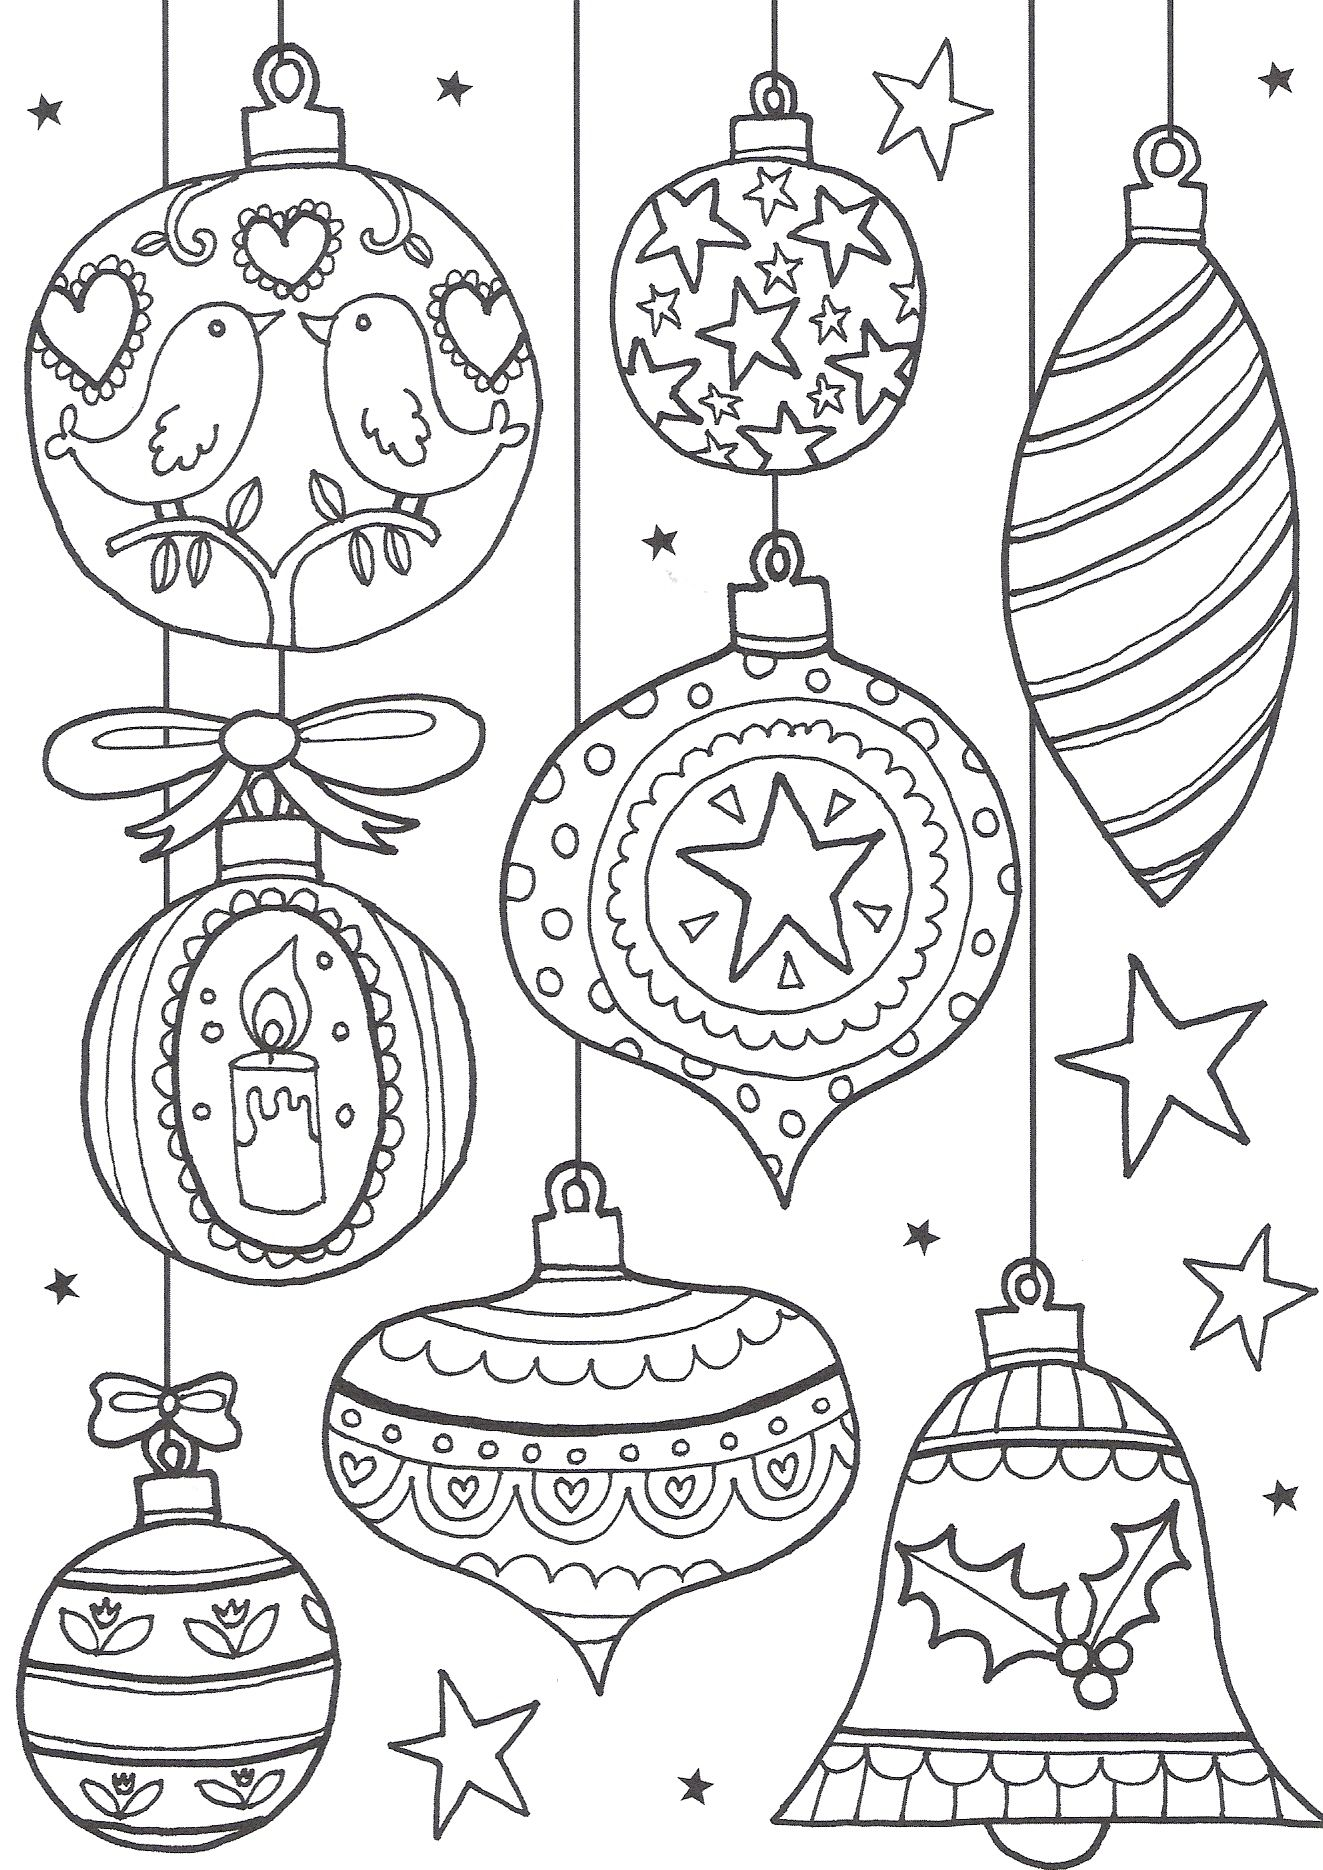 Christmas Coloring Pages For Adults Printable Free With Colouring The Ultimate Roundup